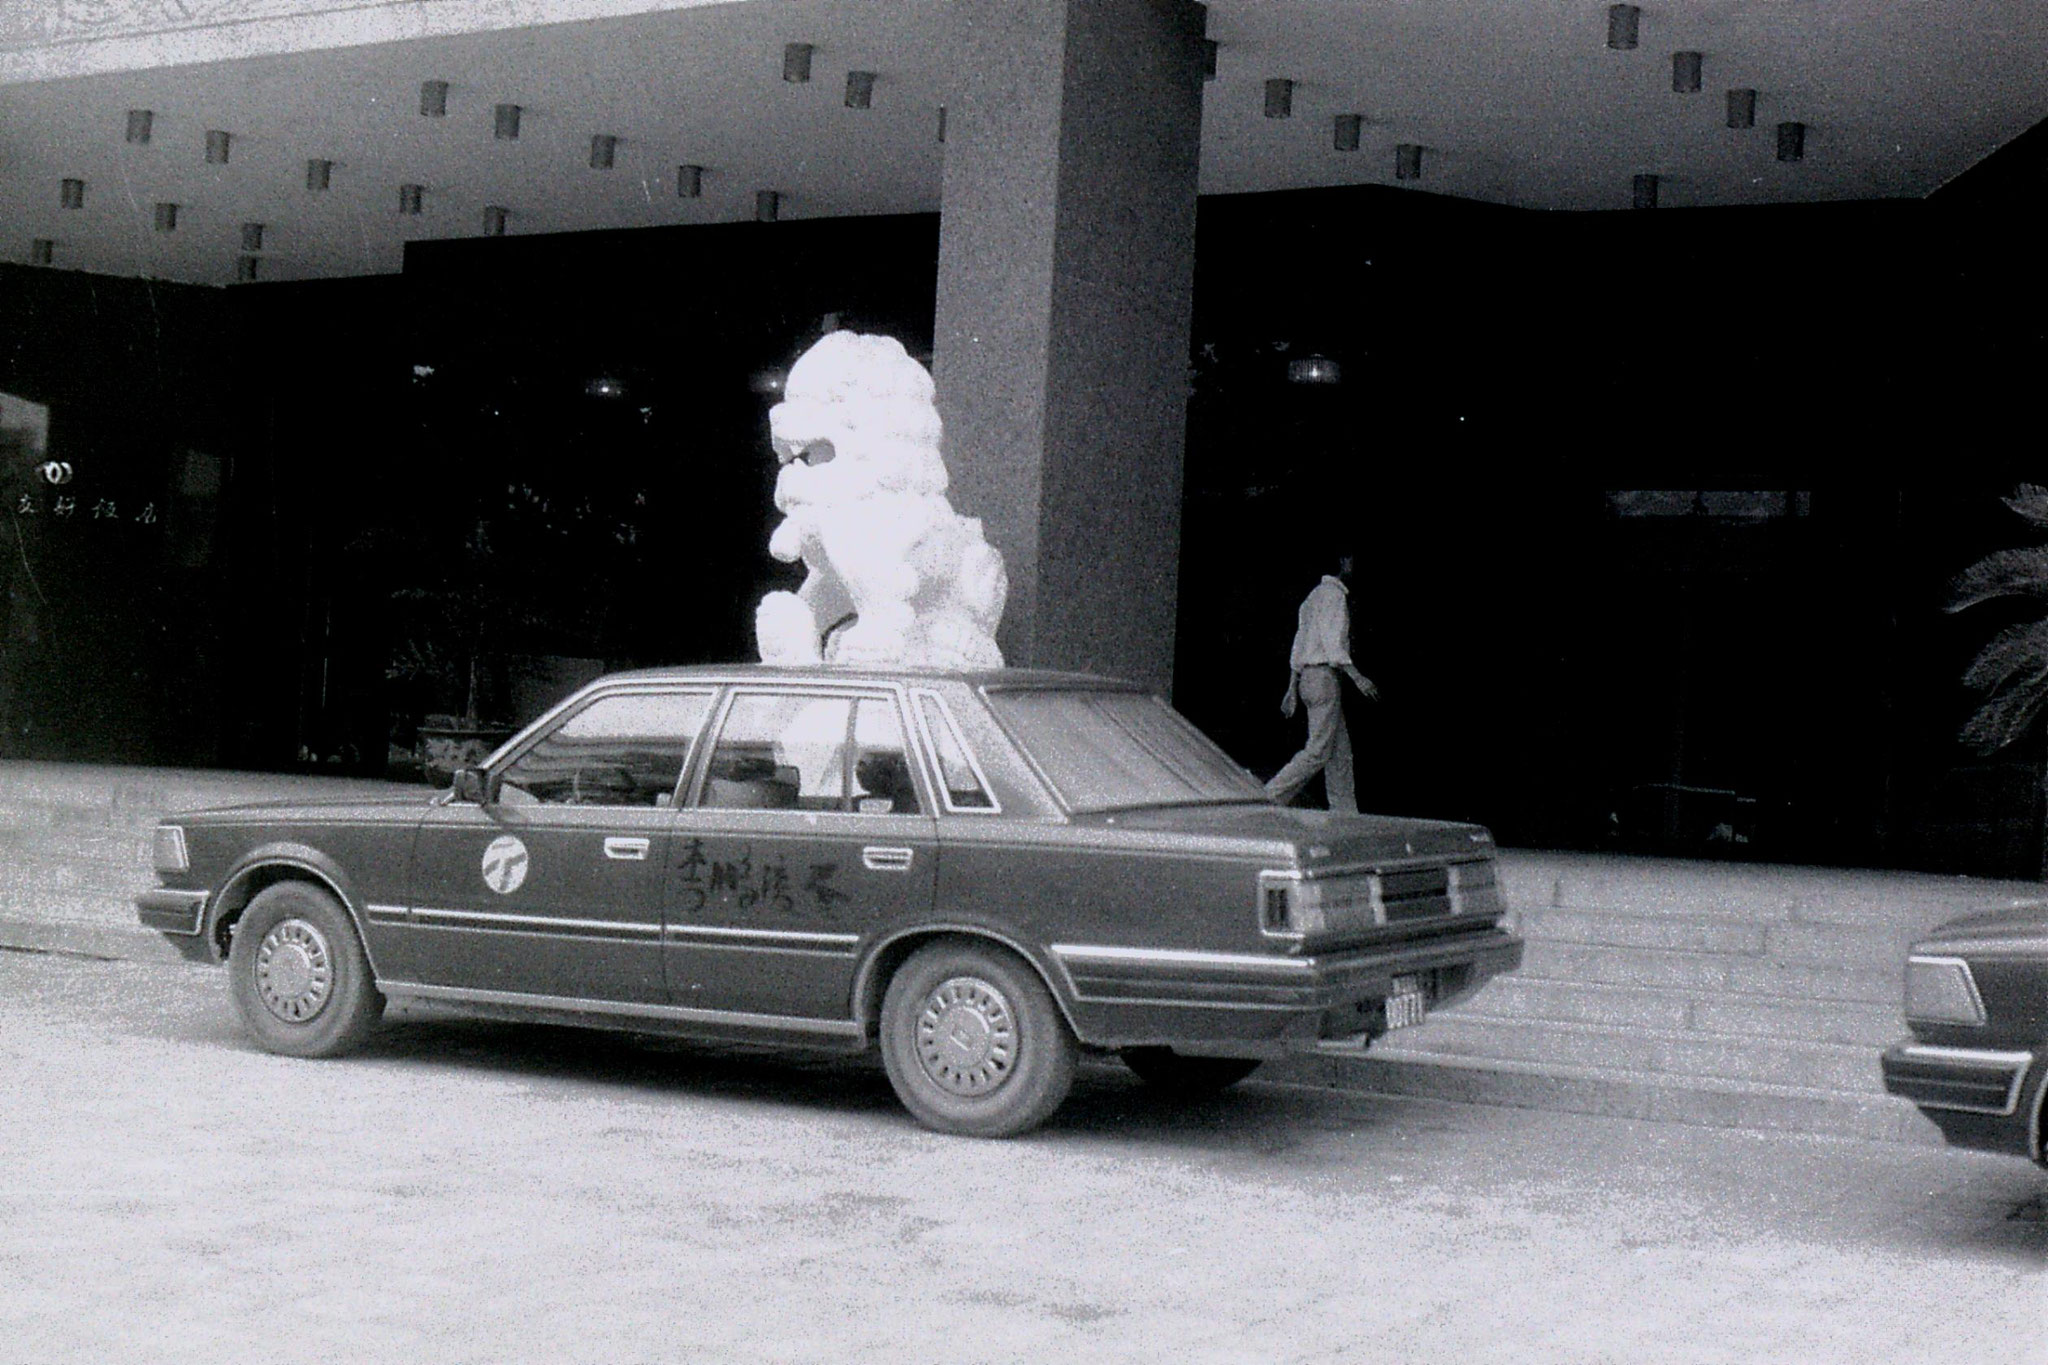 8/6/1989: 10: taxi at Friendship Hotel with slogan